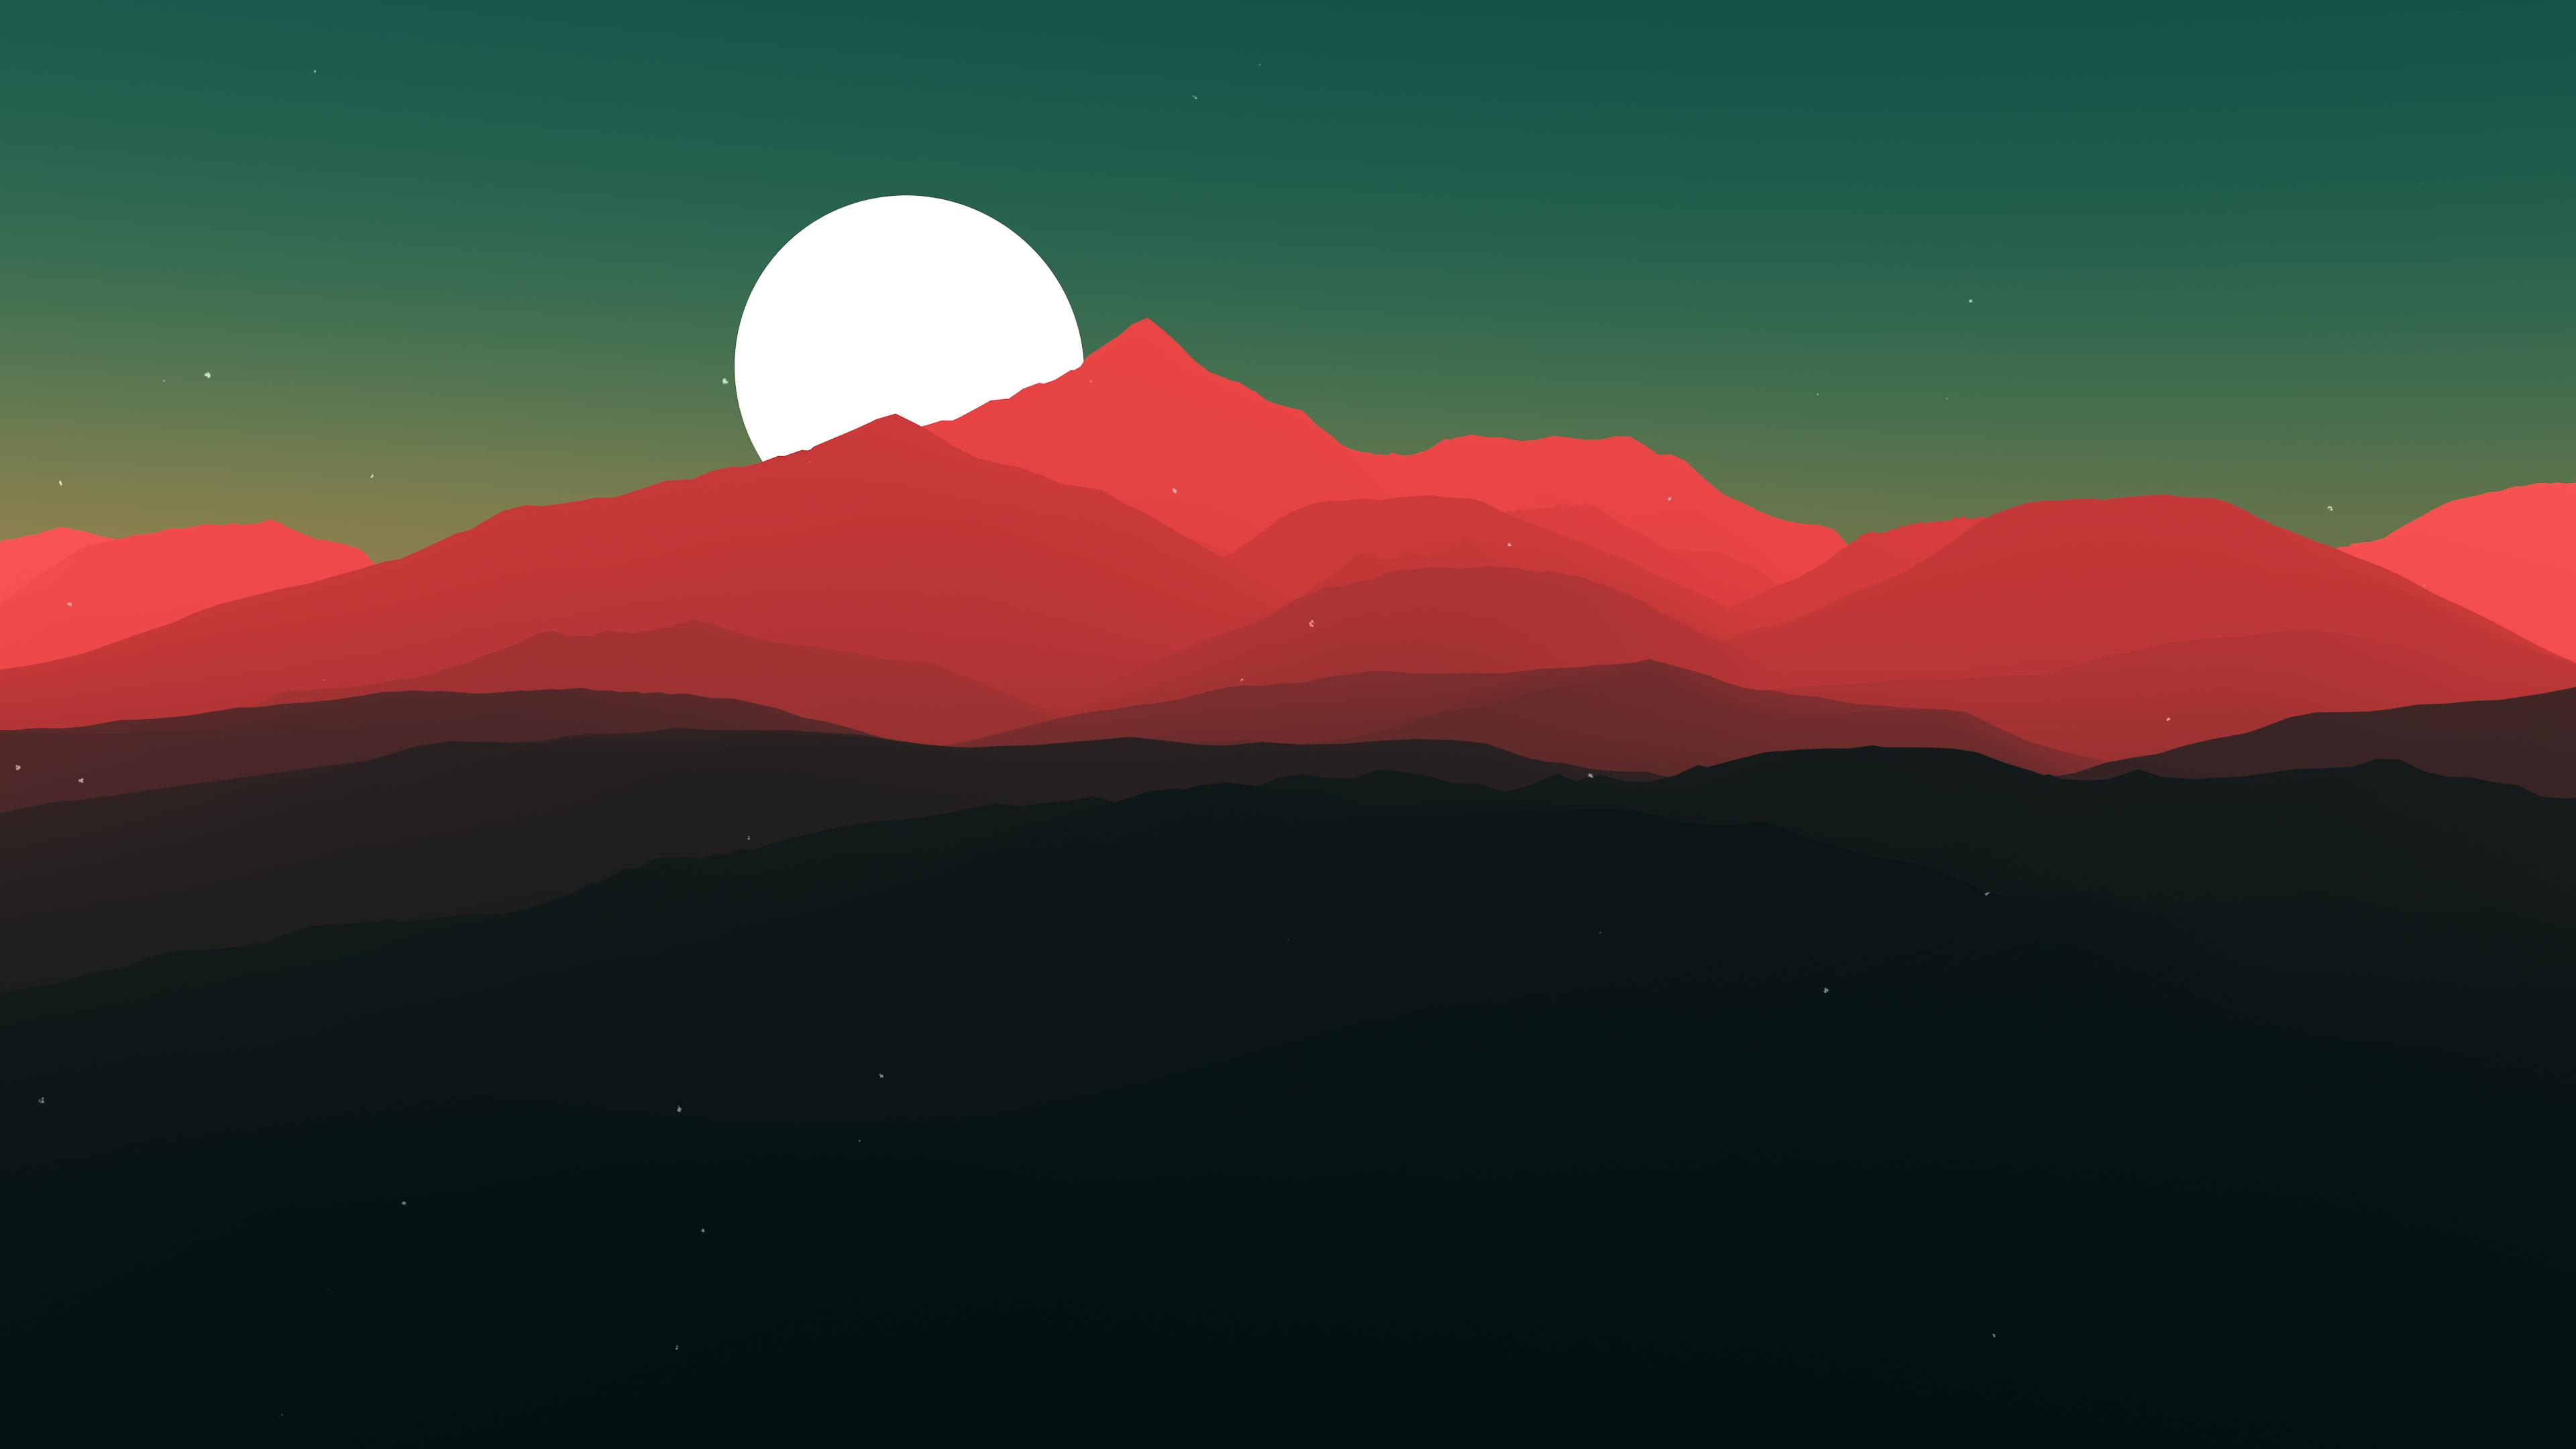 Minimalist landscape hd 4k wallpaper for Minimal art video